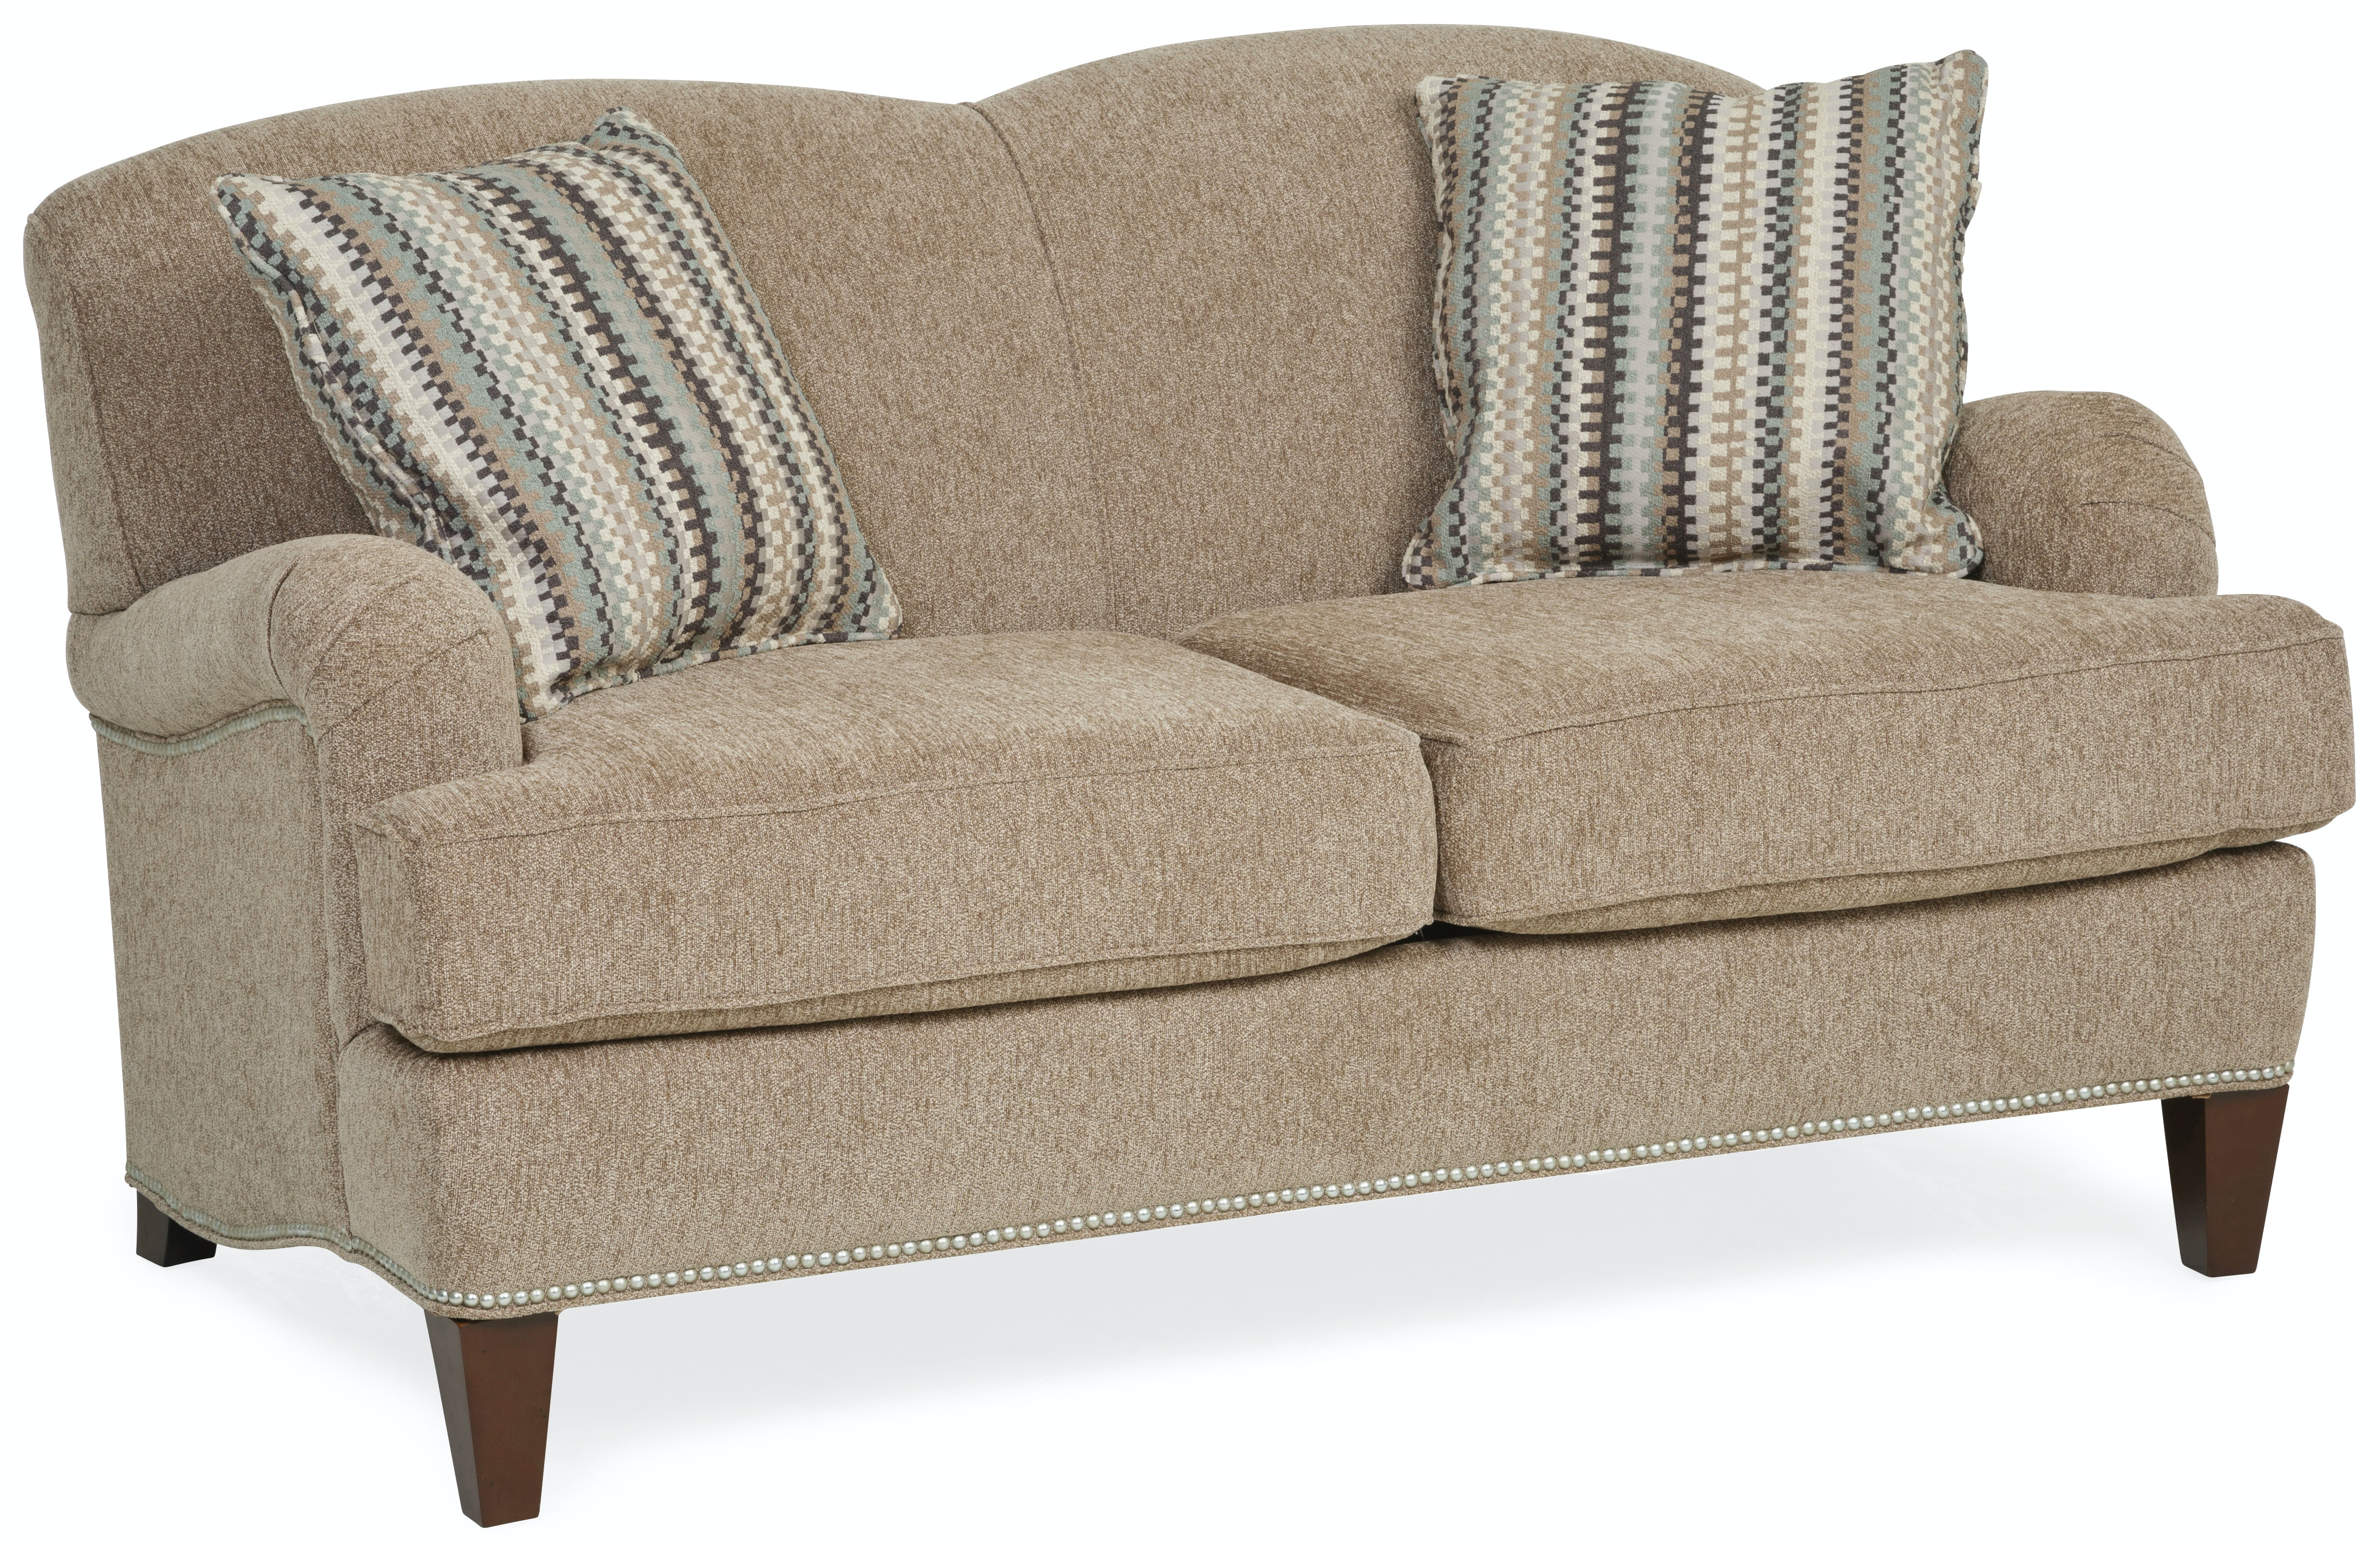 Pia Accent Chair ST:506482